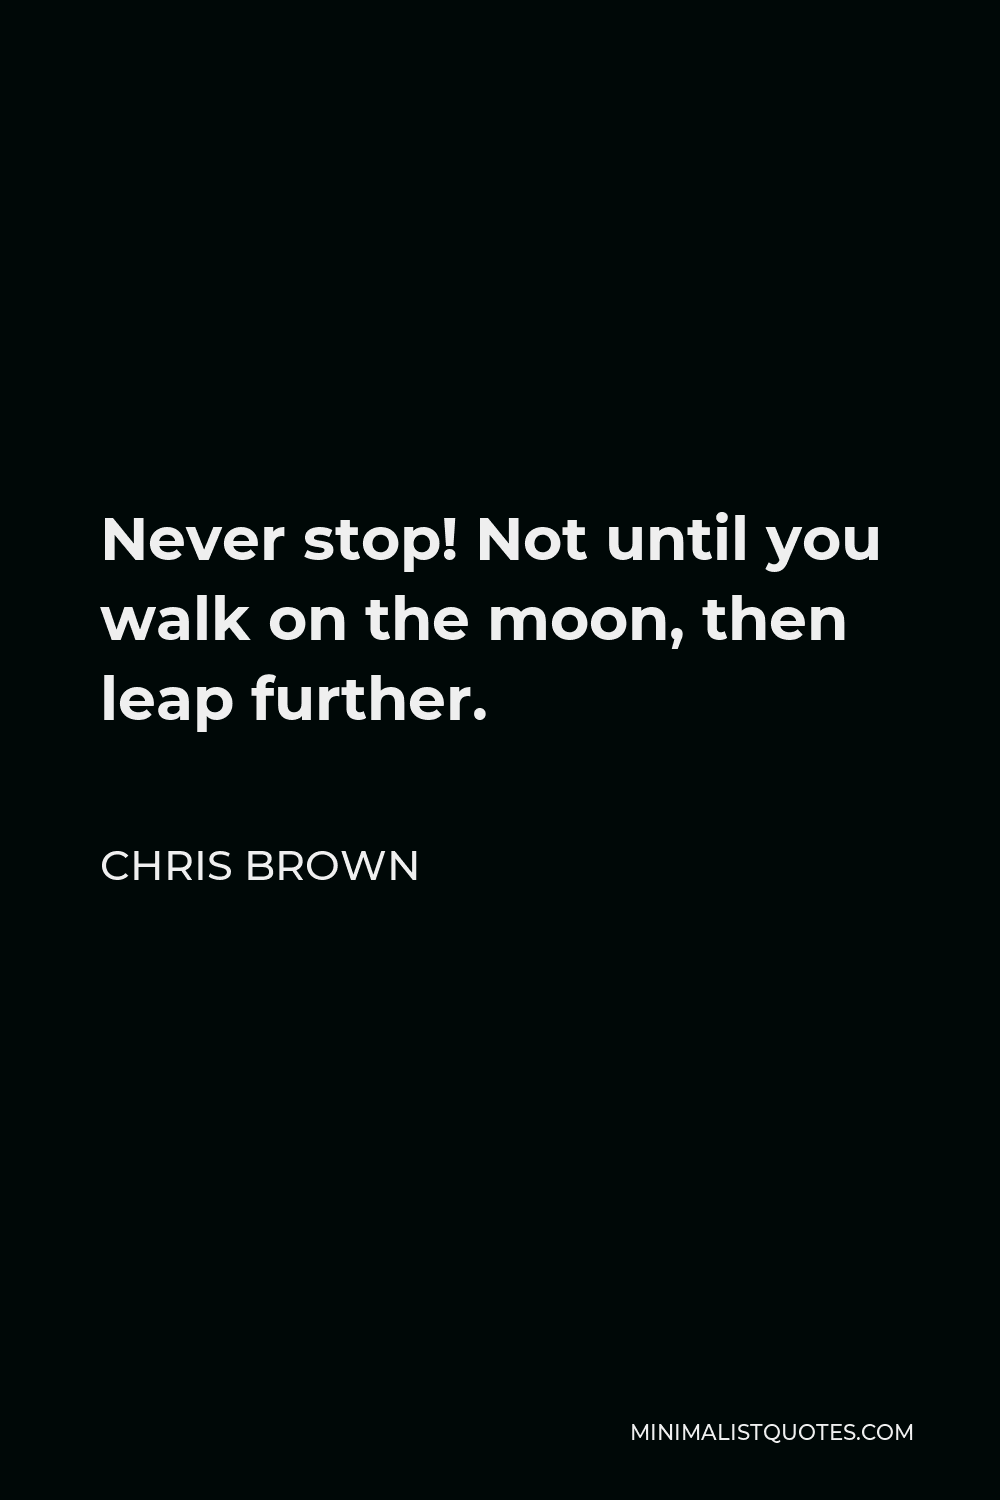 Chris Brown Quote - Never stop! Not until you walk on the moon, then leap further.